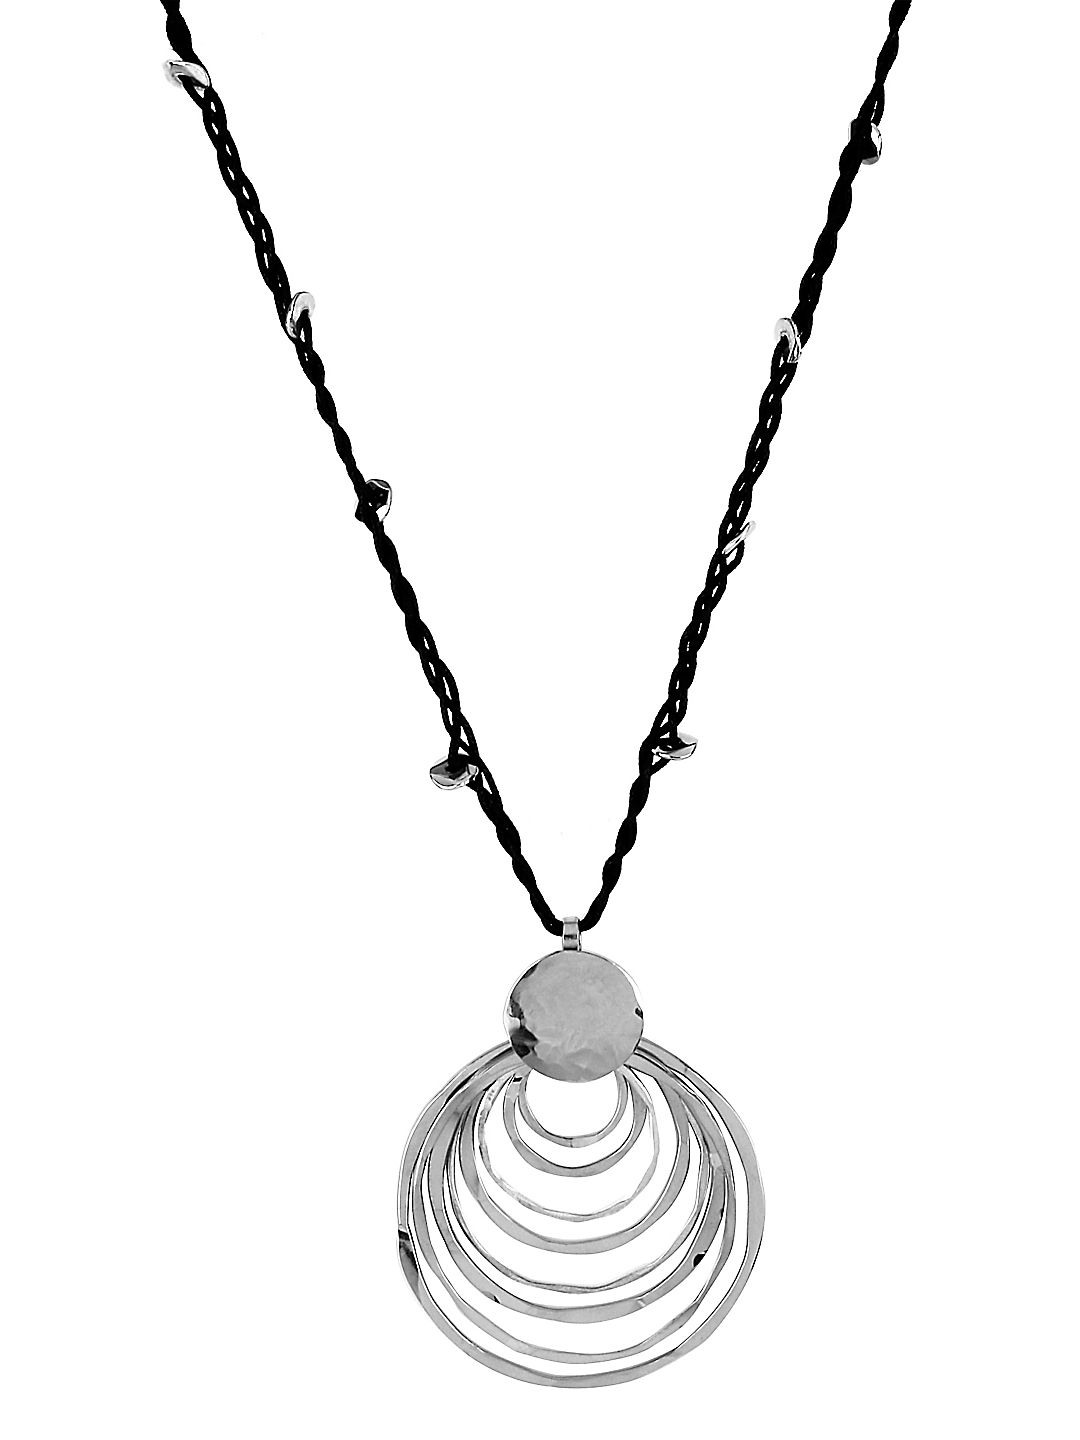 Layered Ring Pendant Necklace